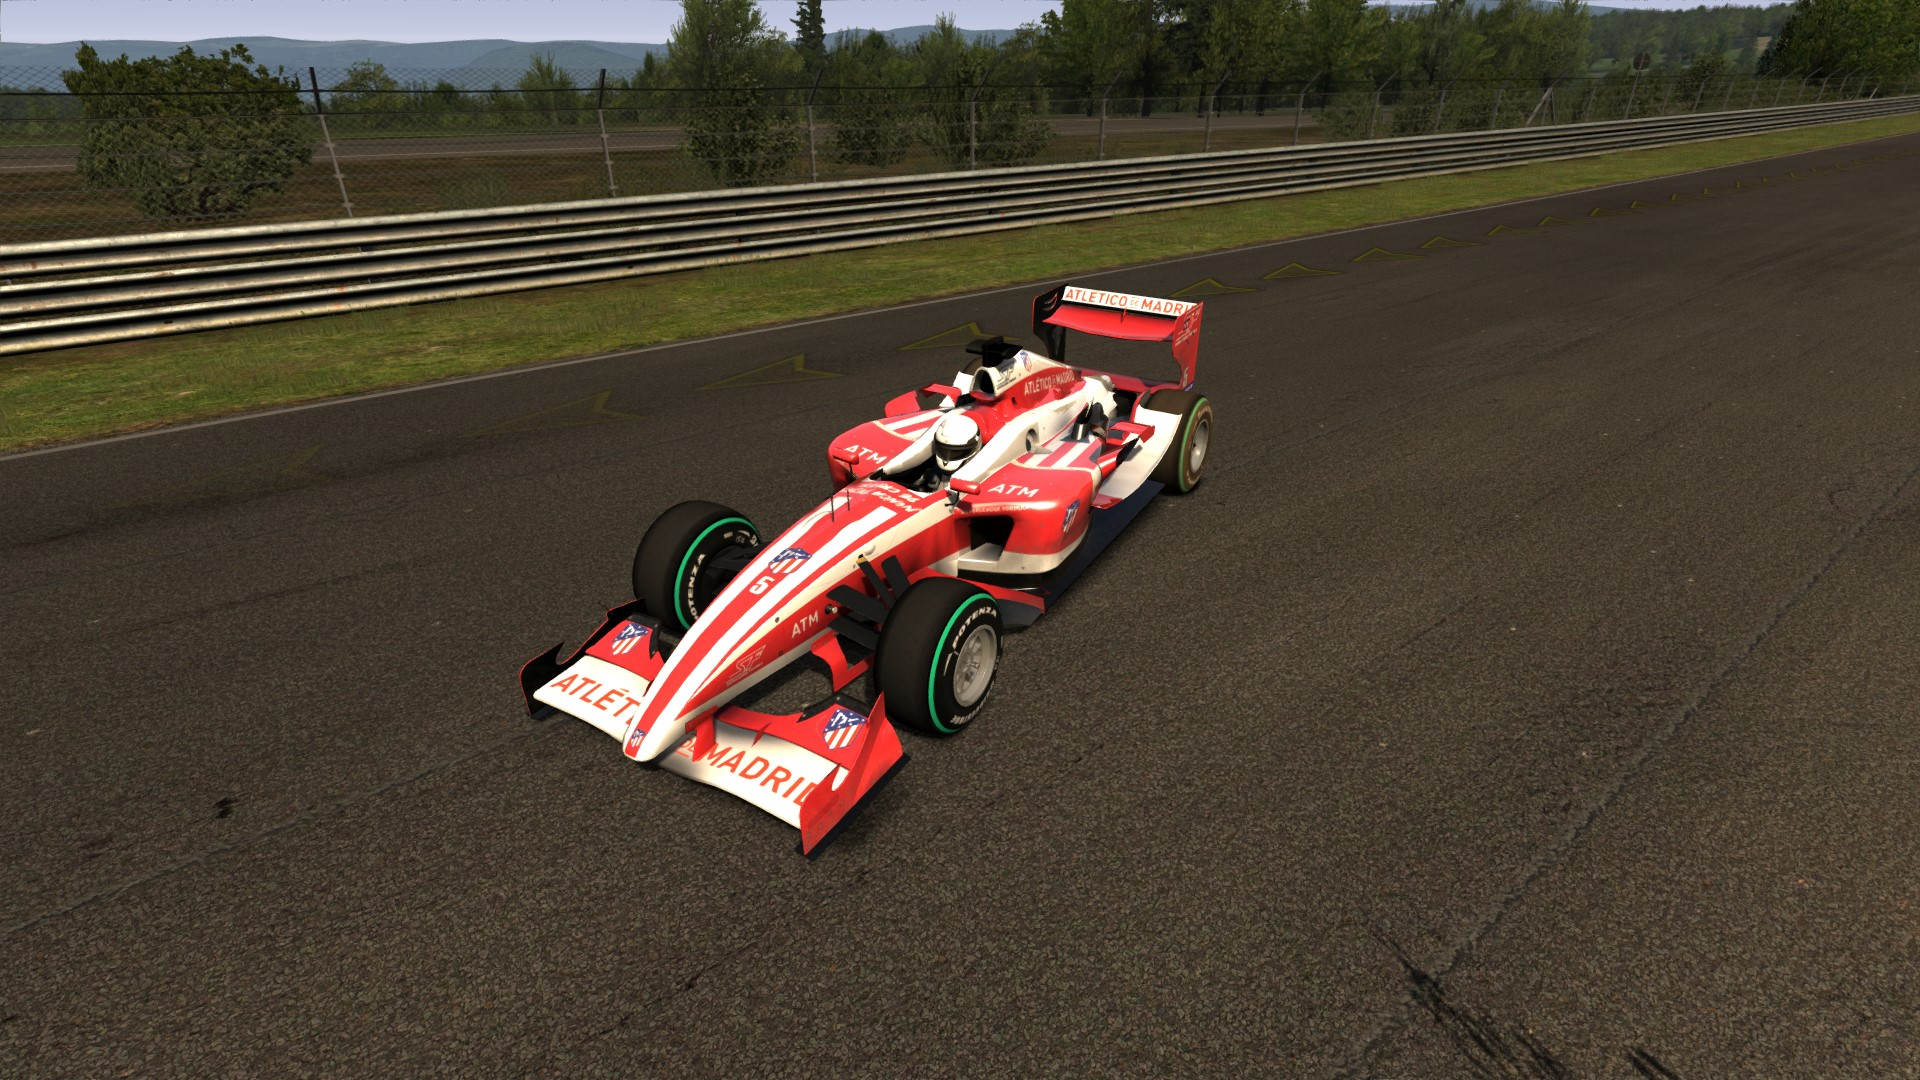 Screenshot_superleague_formula_ks_nordschleife_17-6-119-19-10-5.jpg